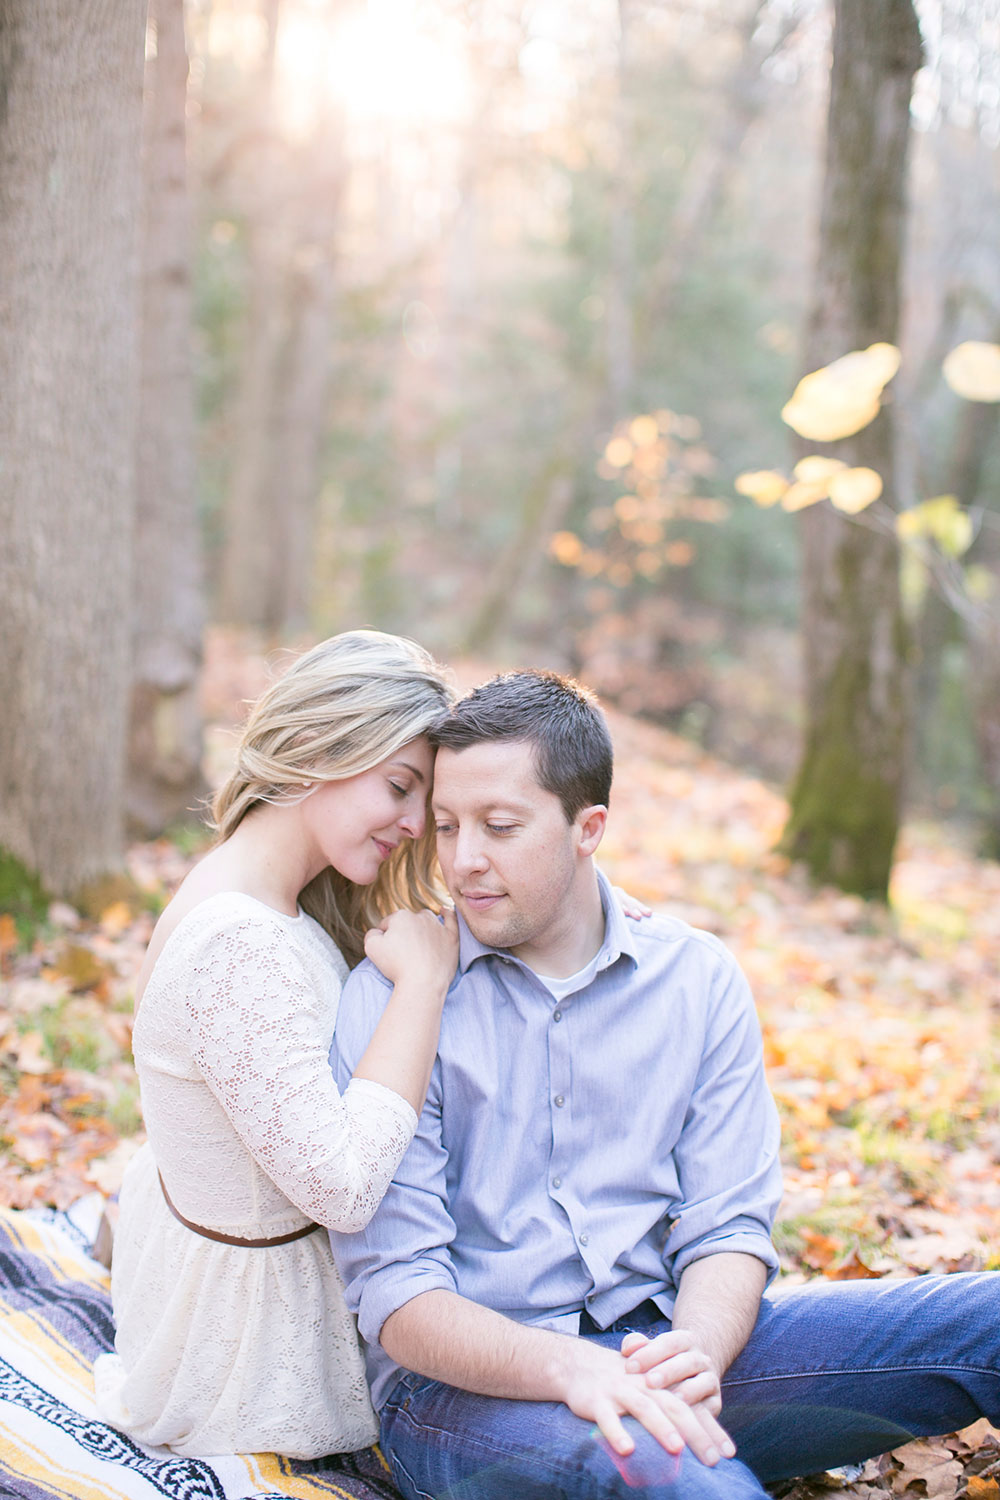 Albion-Hills-Conservation-Park-engagement-session-caledon-photo-by-philosophy-studios-eva-derrick-photography-006.jpg